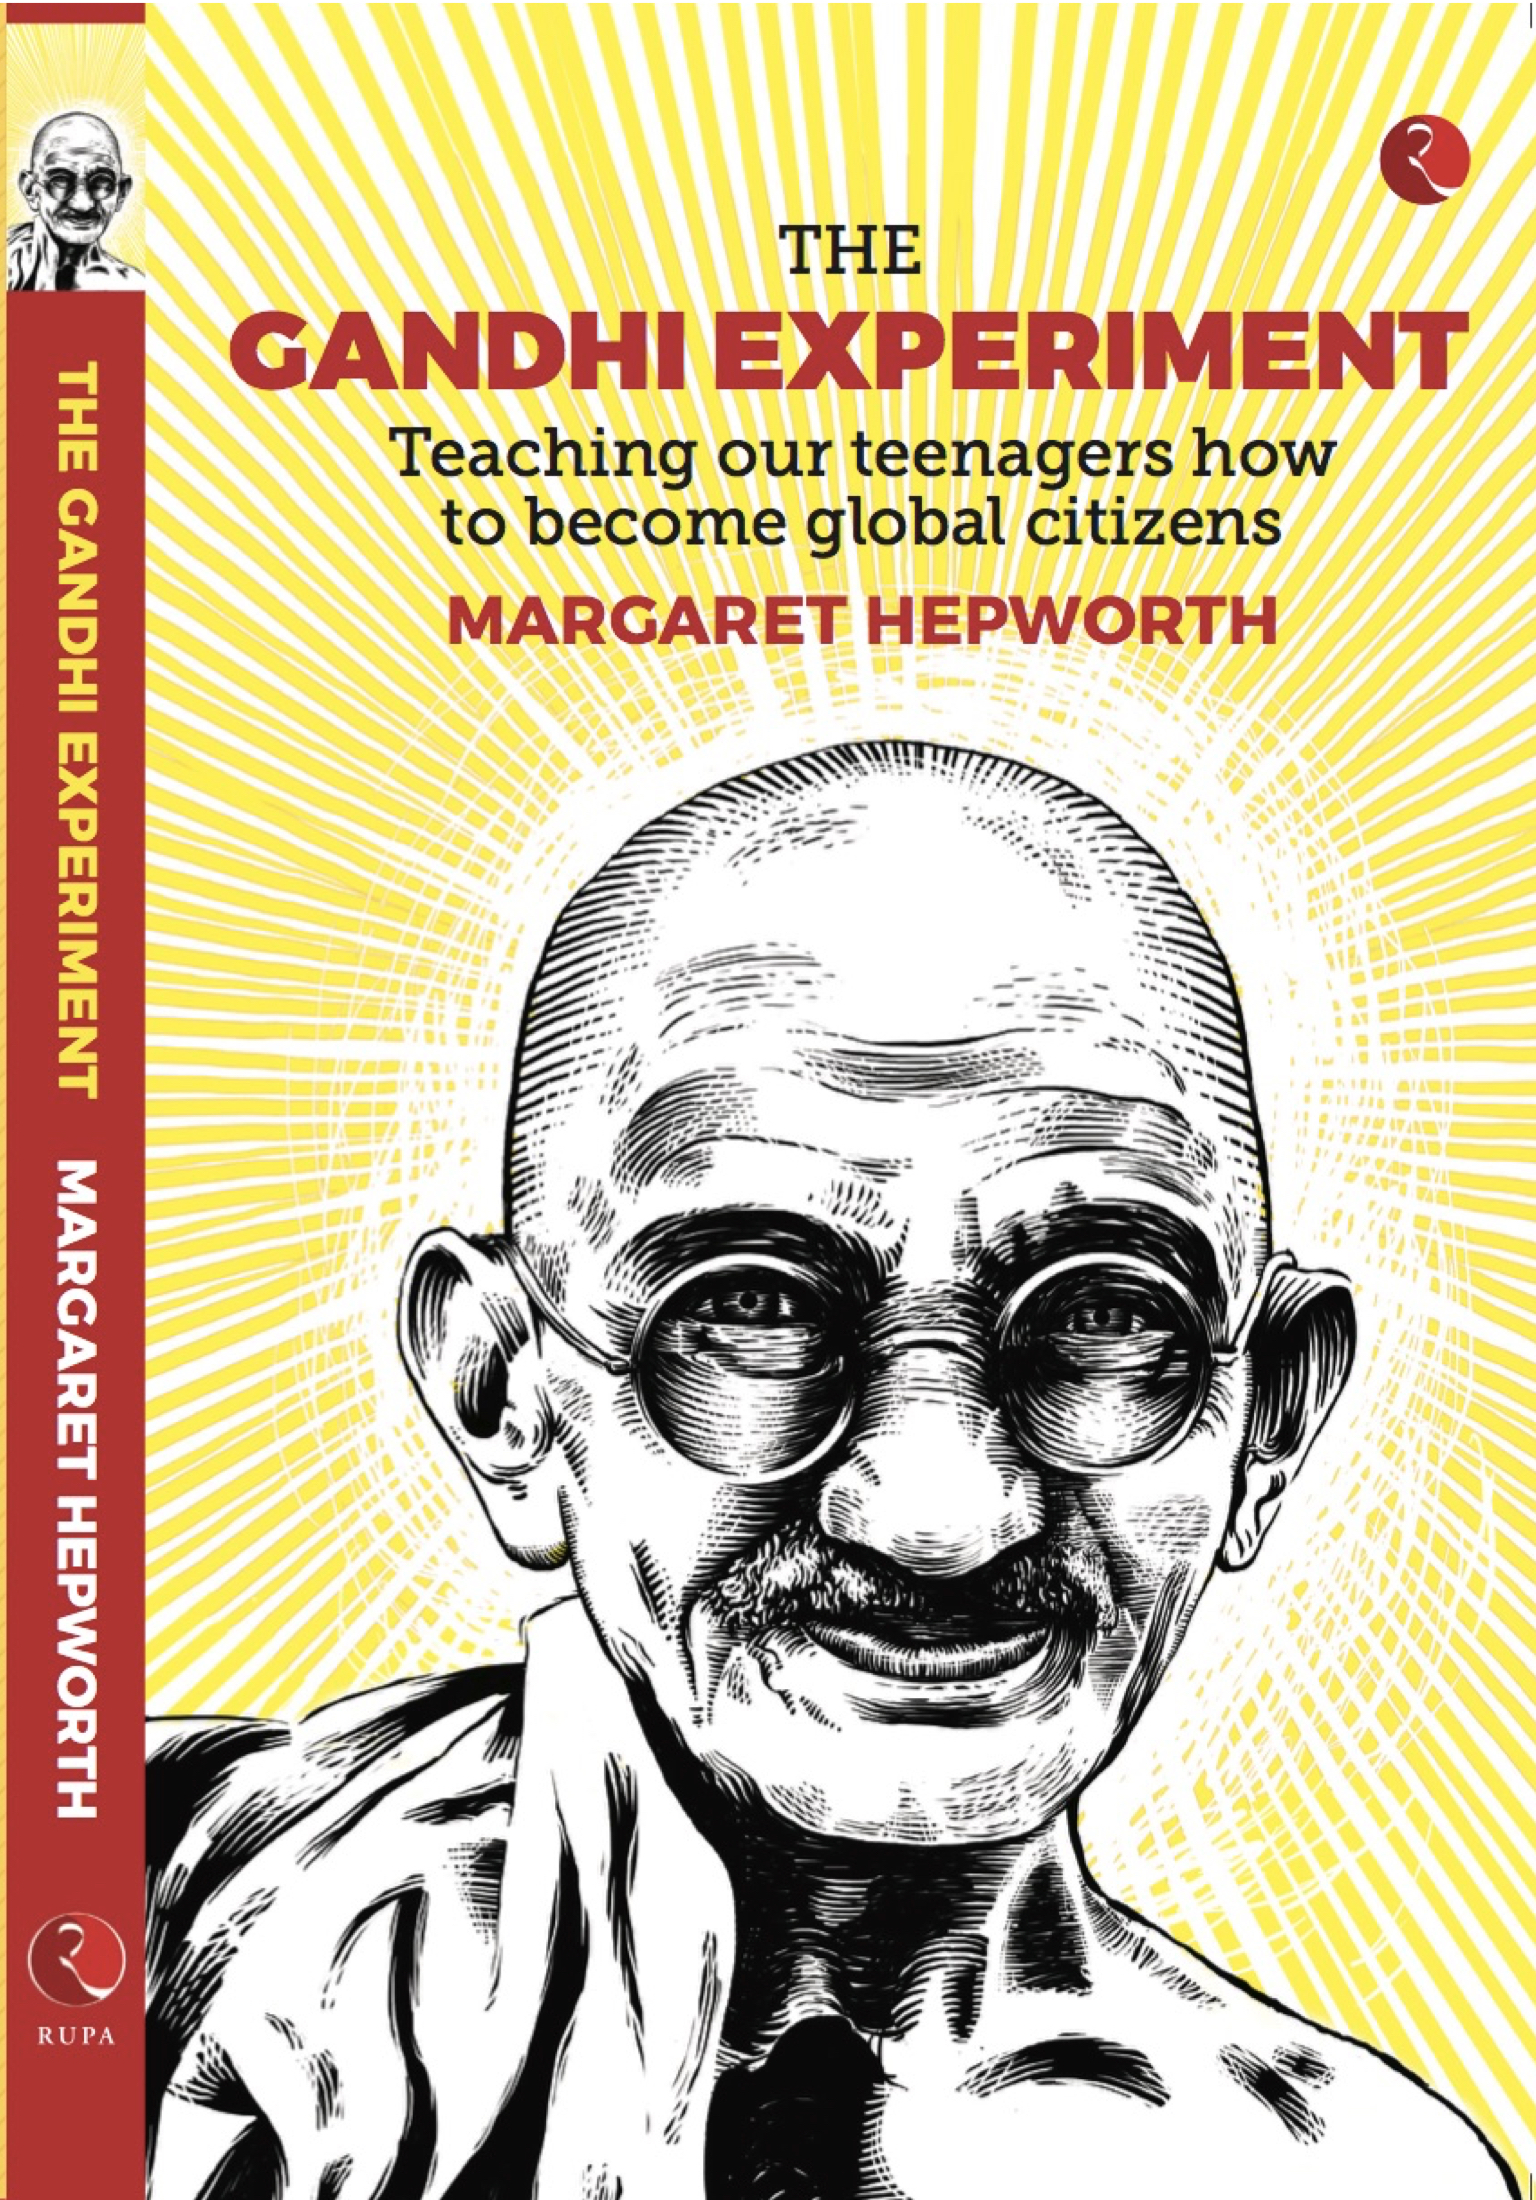 The Gandhi Experiment book Margaret Hepworth.jpeg